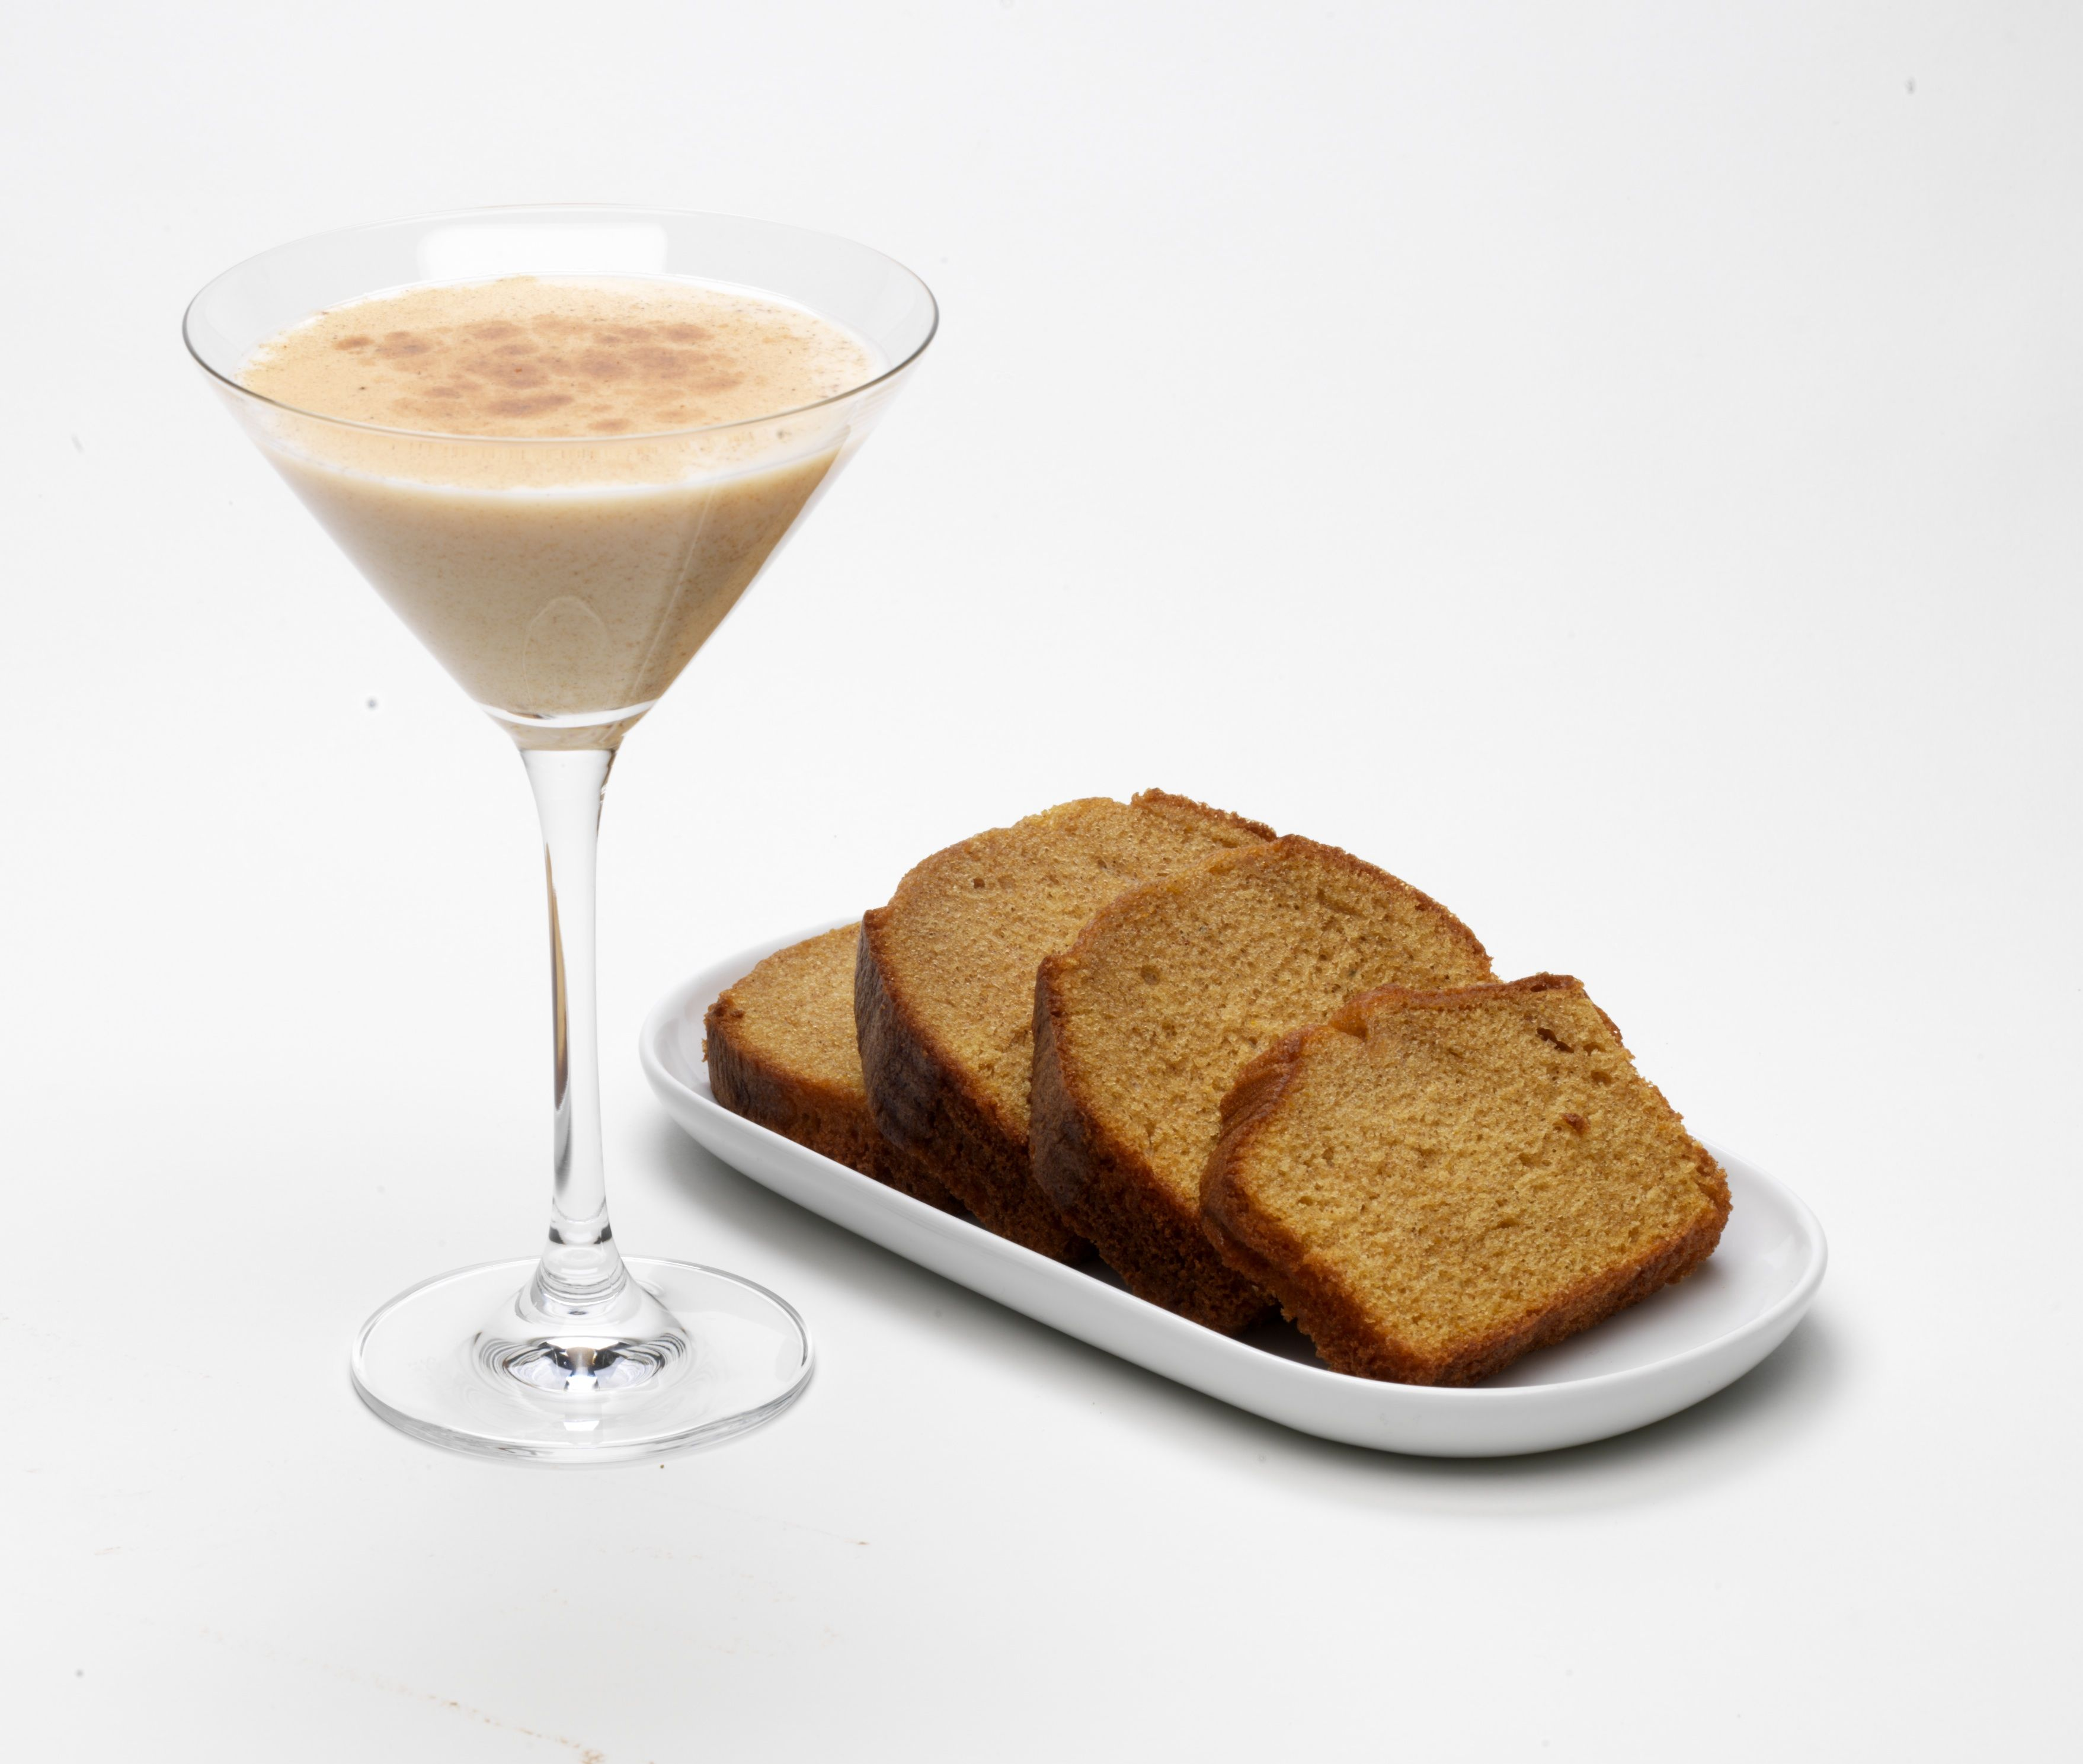 GINGERBREAD MARTINI: 3 Parts RumChata 1 Part Gingerbread